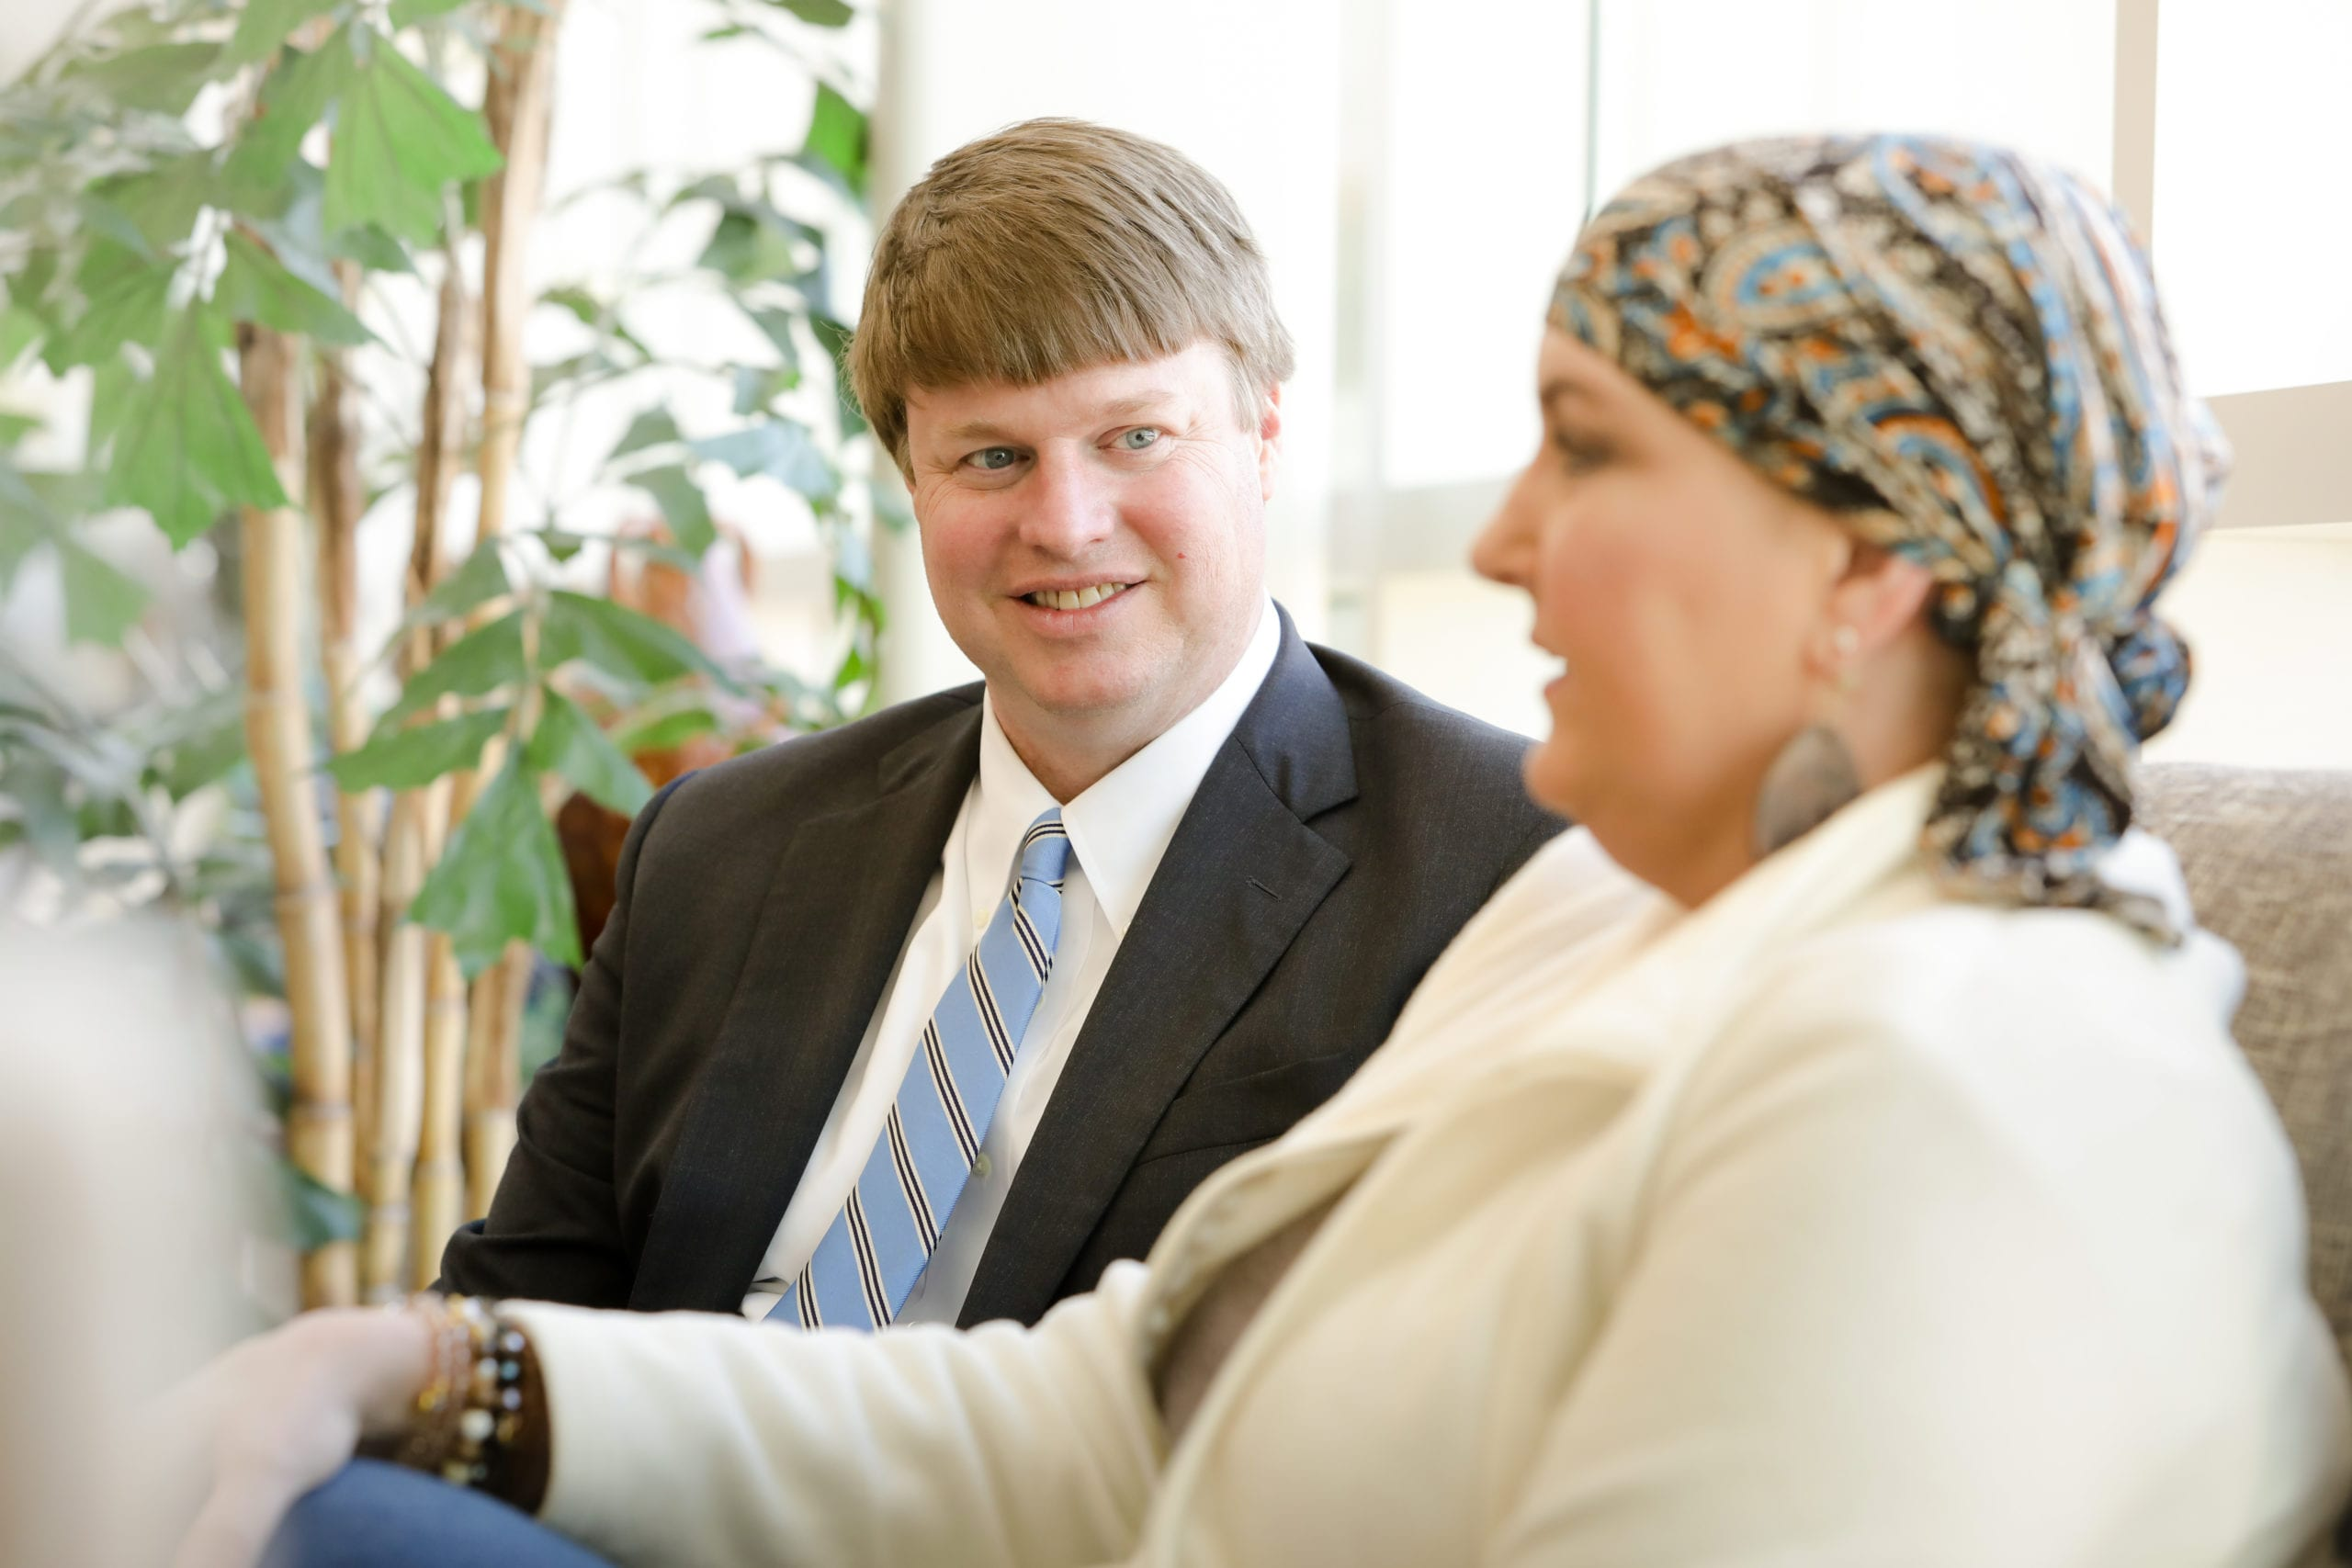 Central Georgia Cancer Care Dr. Sumrall with Patient